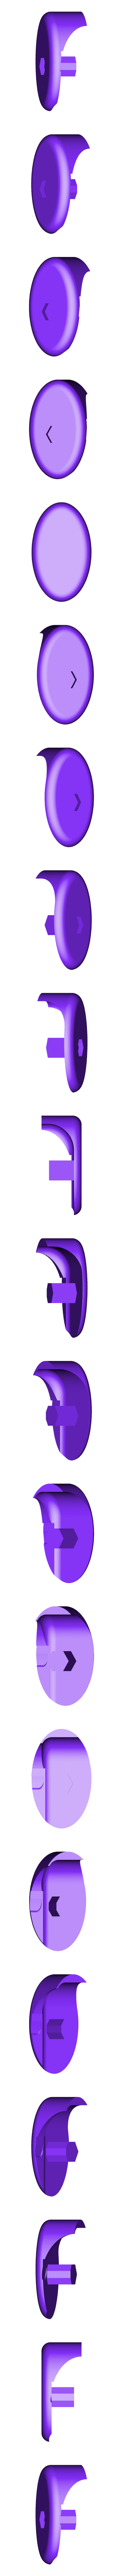 Eye_House_Right.stl Download free STL file Rainbow Toucan • 3D printing template, 3rdesignworks